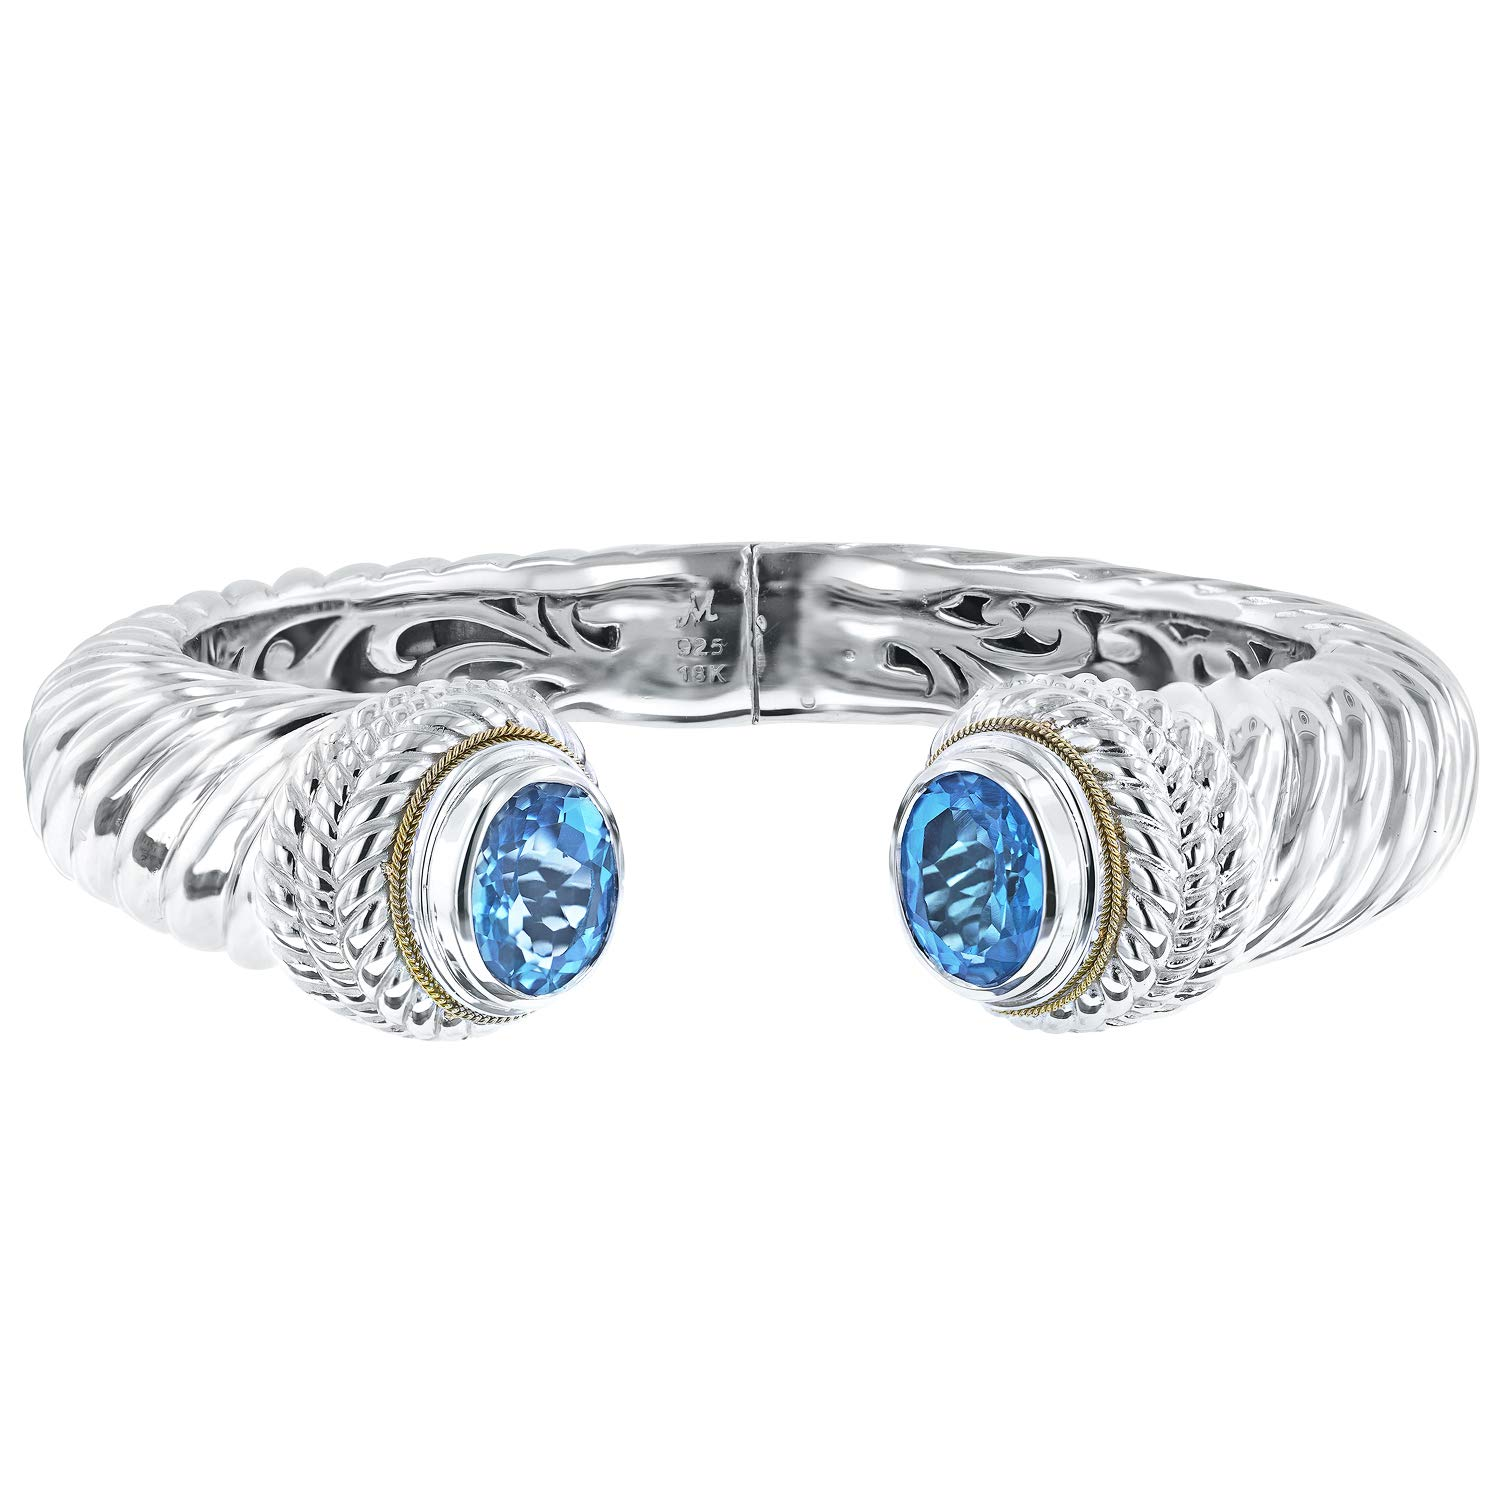 Robert Manse Designs Bali Romanse Gemstone Sterling Silver and 18K Gold Hinged Cuff Bracelet (Swiss-Blue-Topaz)